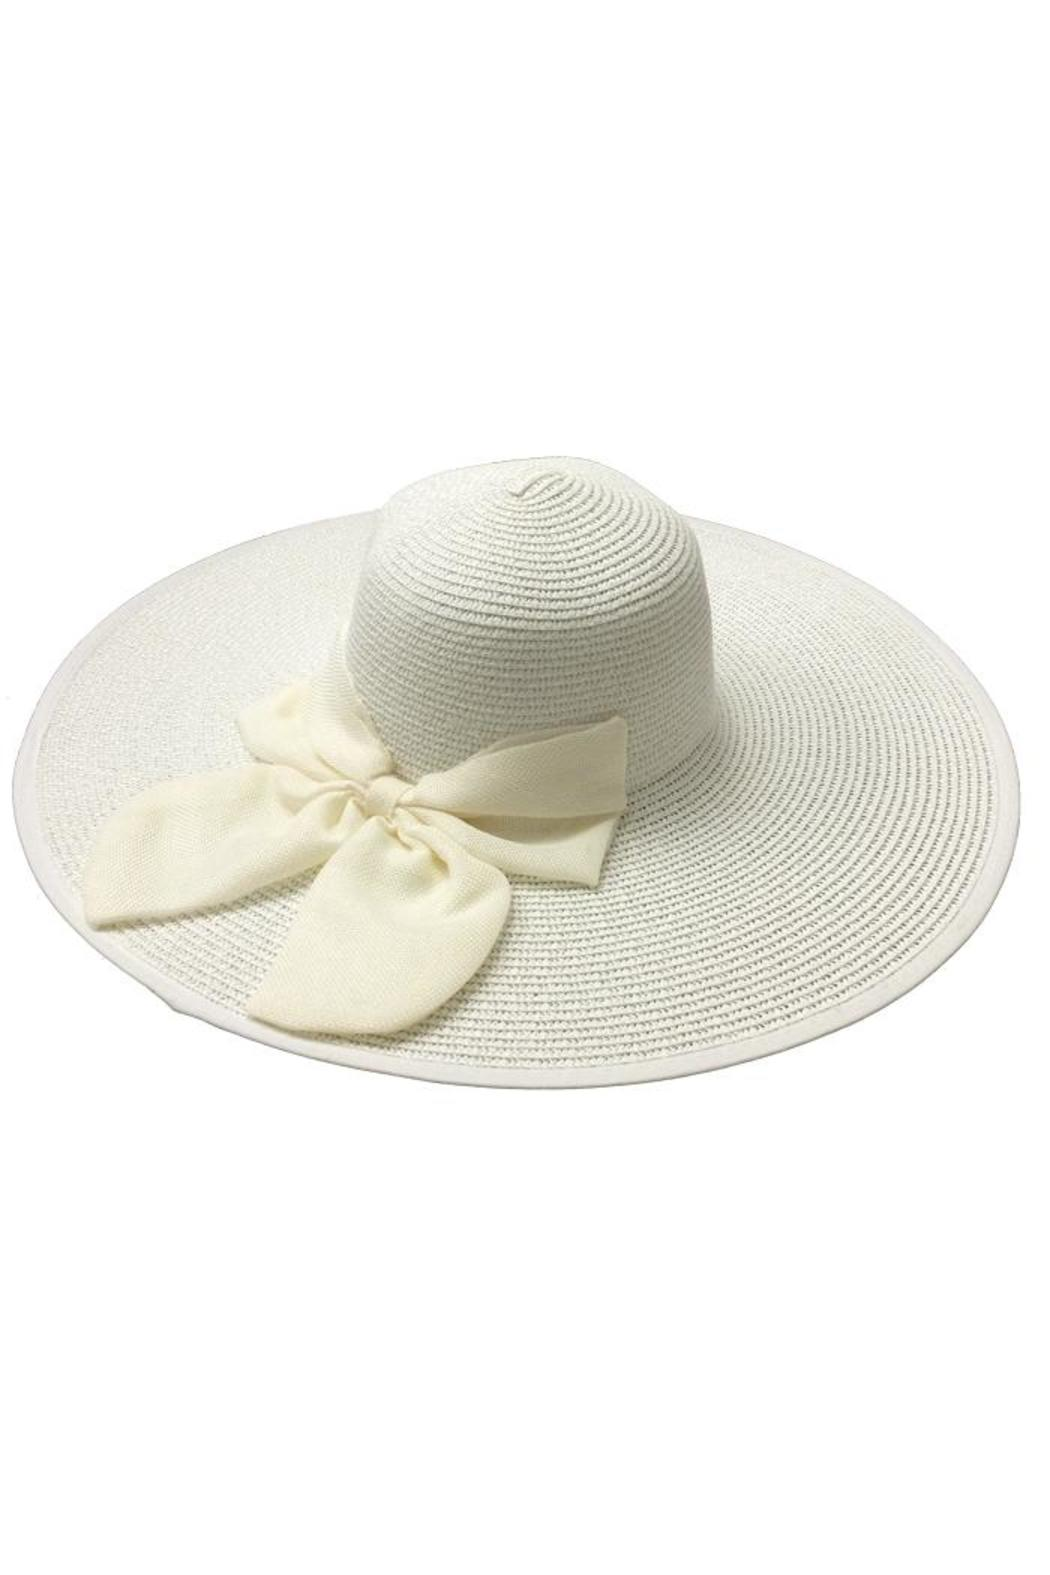 tu-anh boutique White Bow Sunhat - Main Image